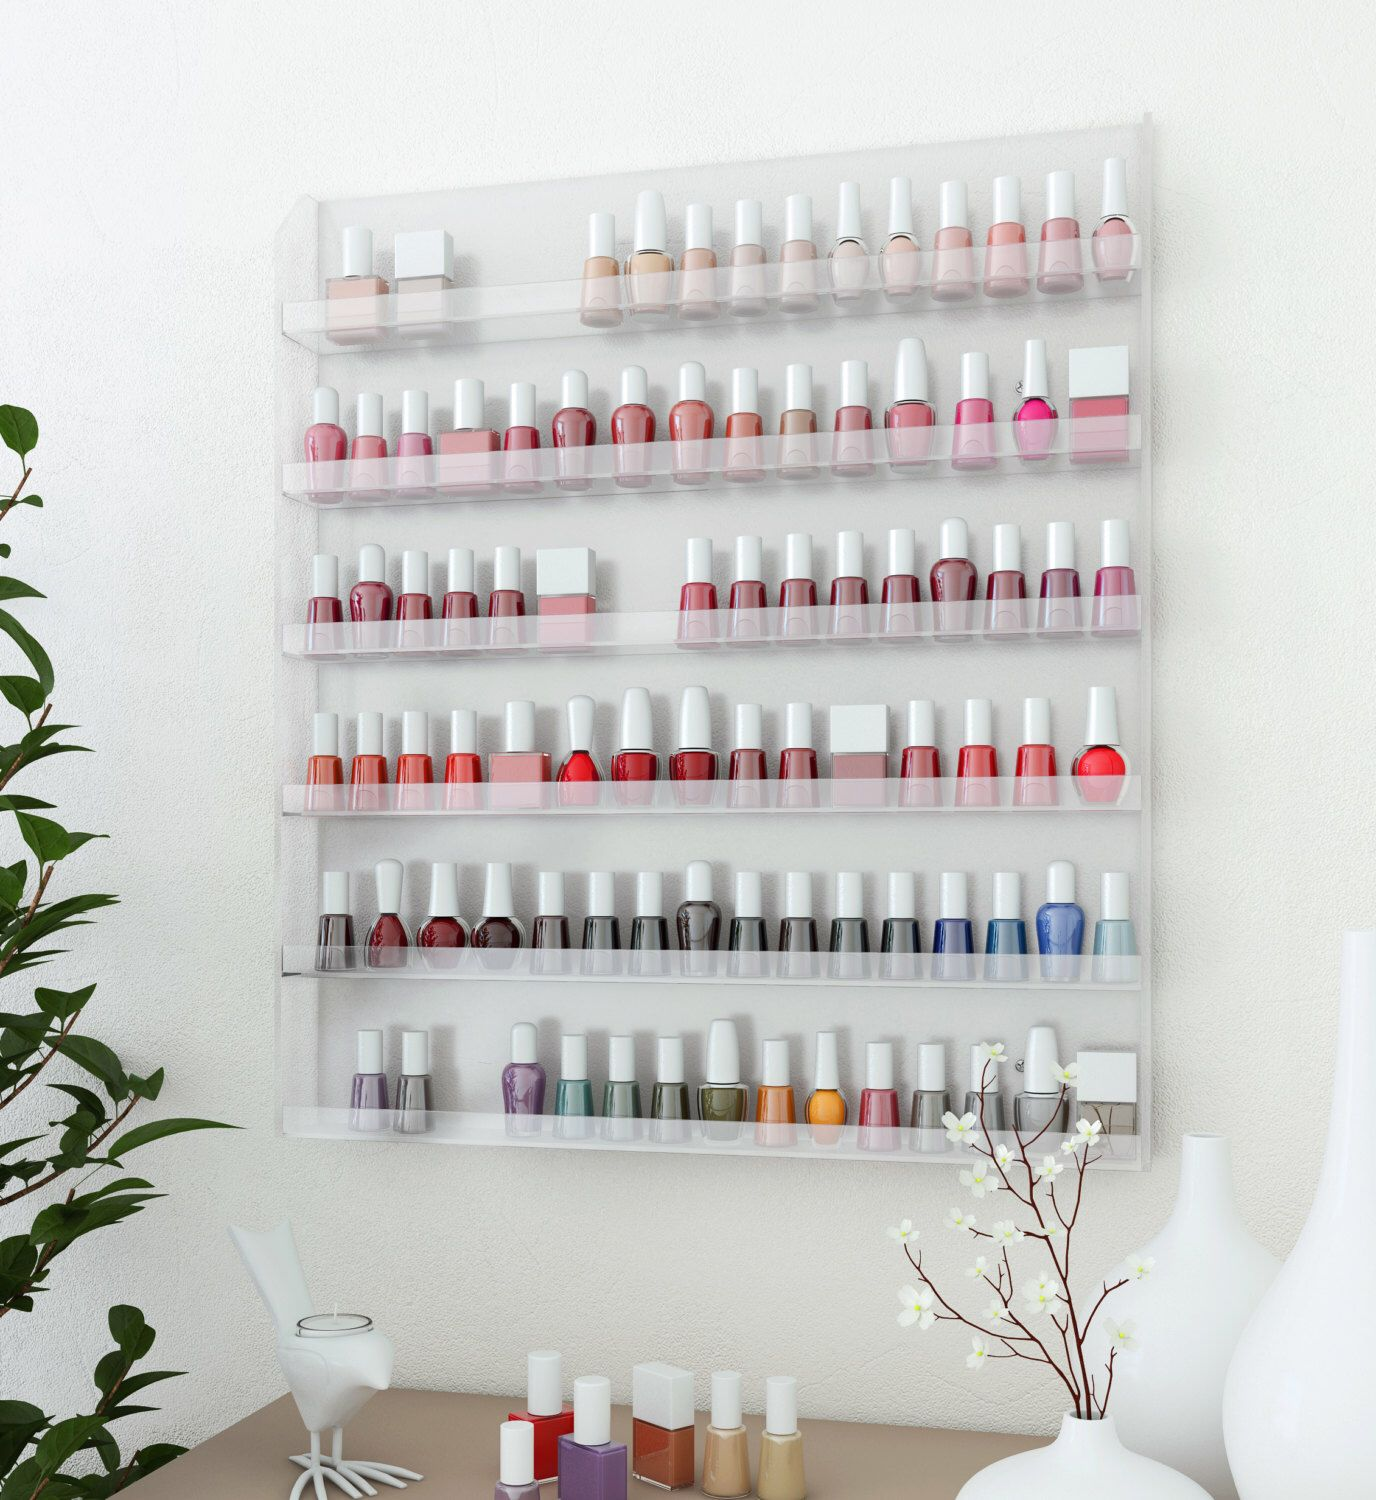 Wall Rack Organizer Holds up to 96 Bottles of Nail Polish by teitelbaum on Etsy https://www.etsy.com/listing/162207302/wall-rack-organizer-holds-up-to-96